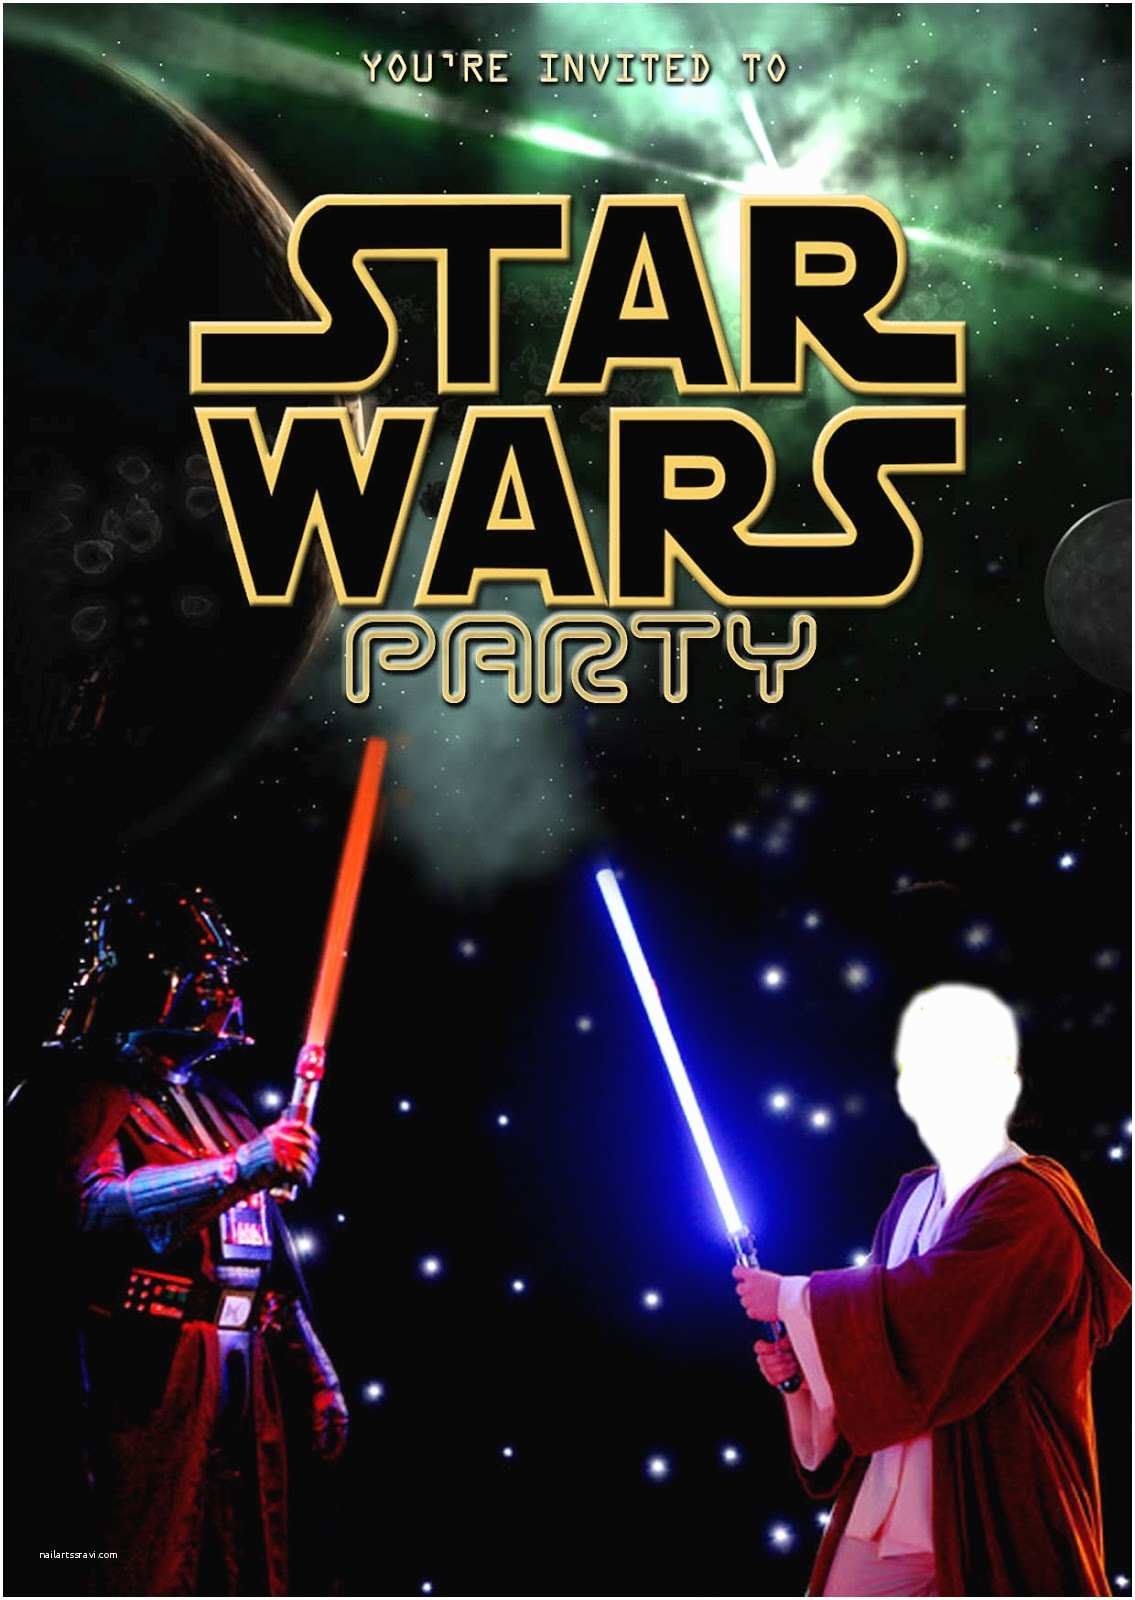 Star Wars Birthday Invitations Star Wars Party Invitations